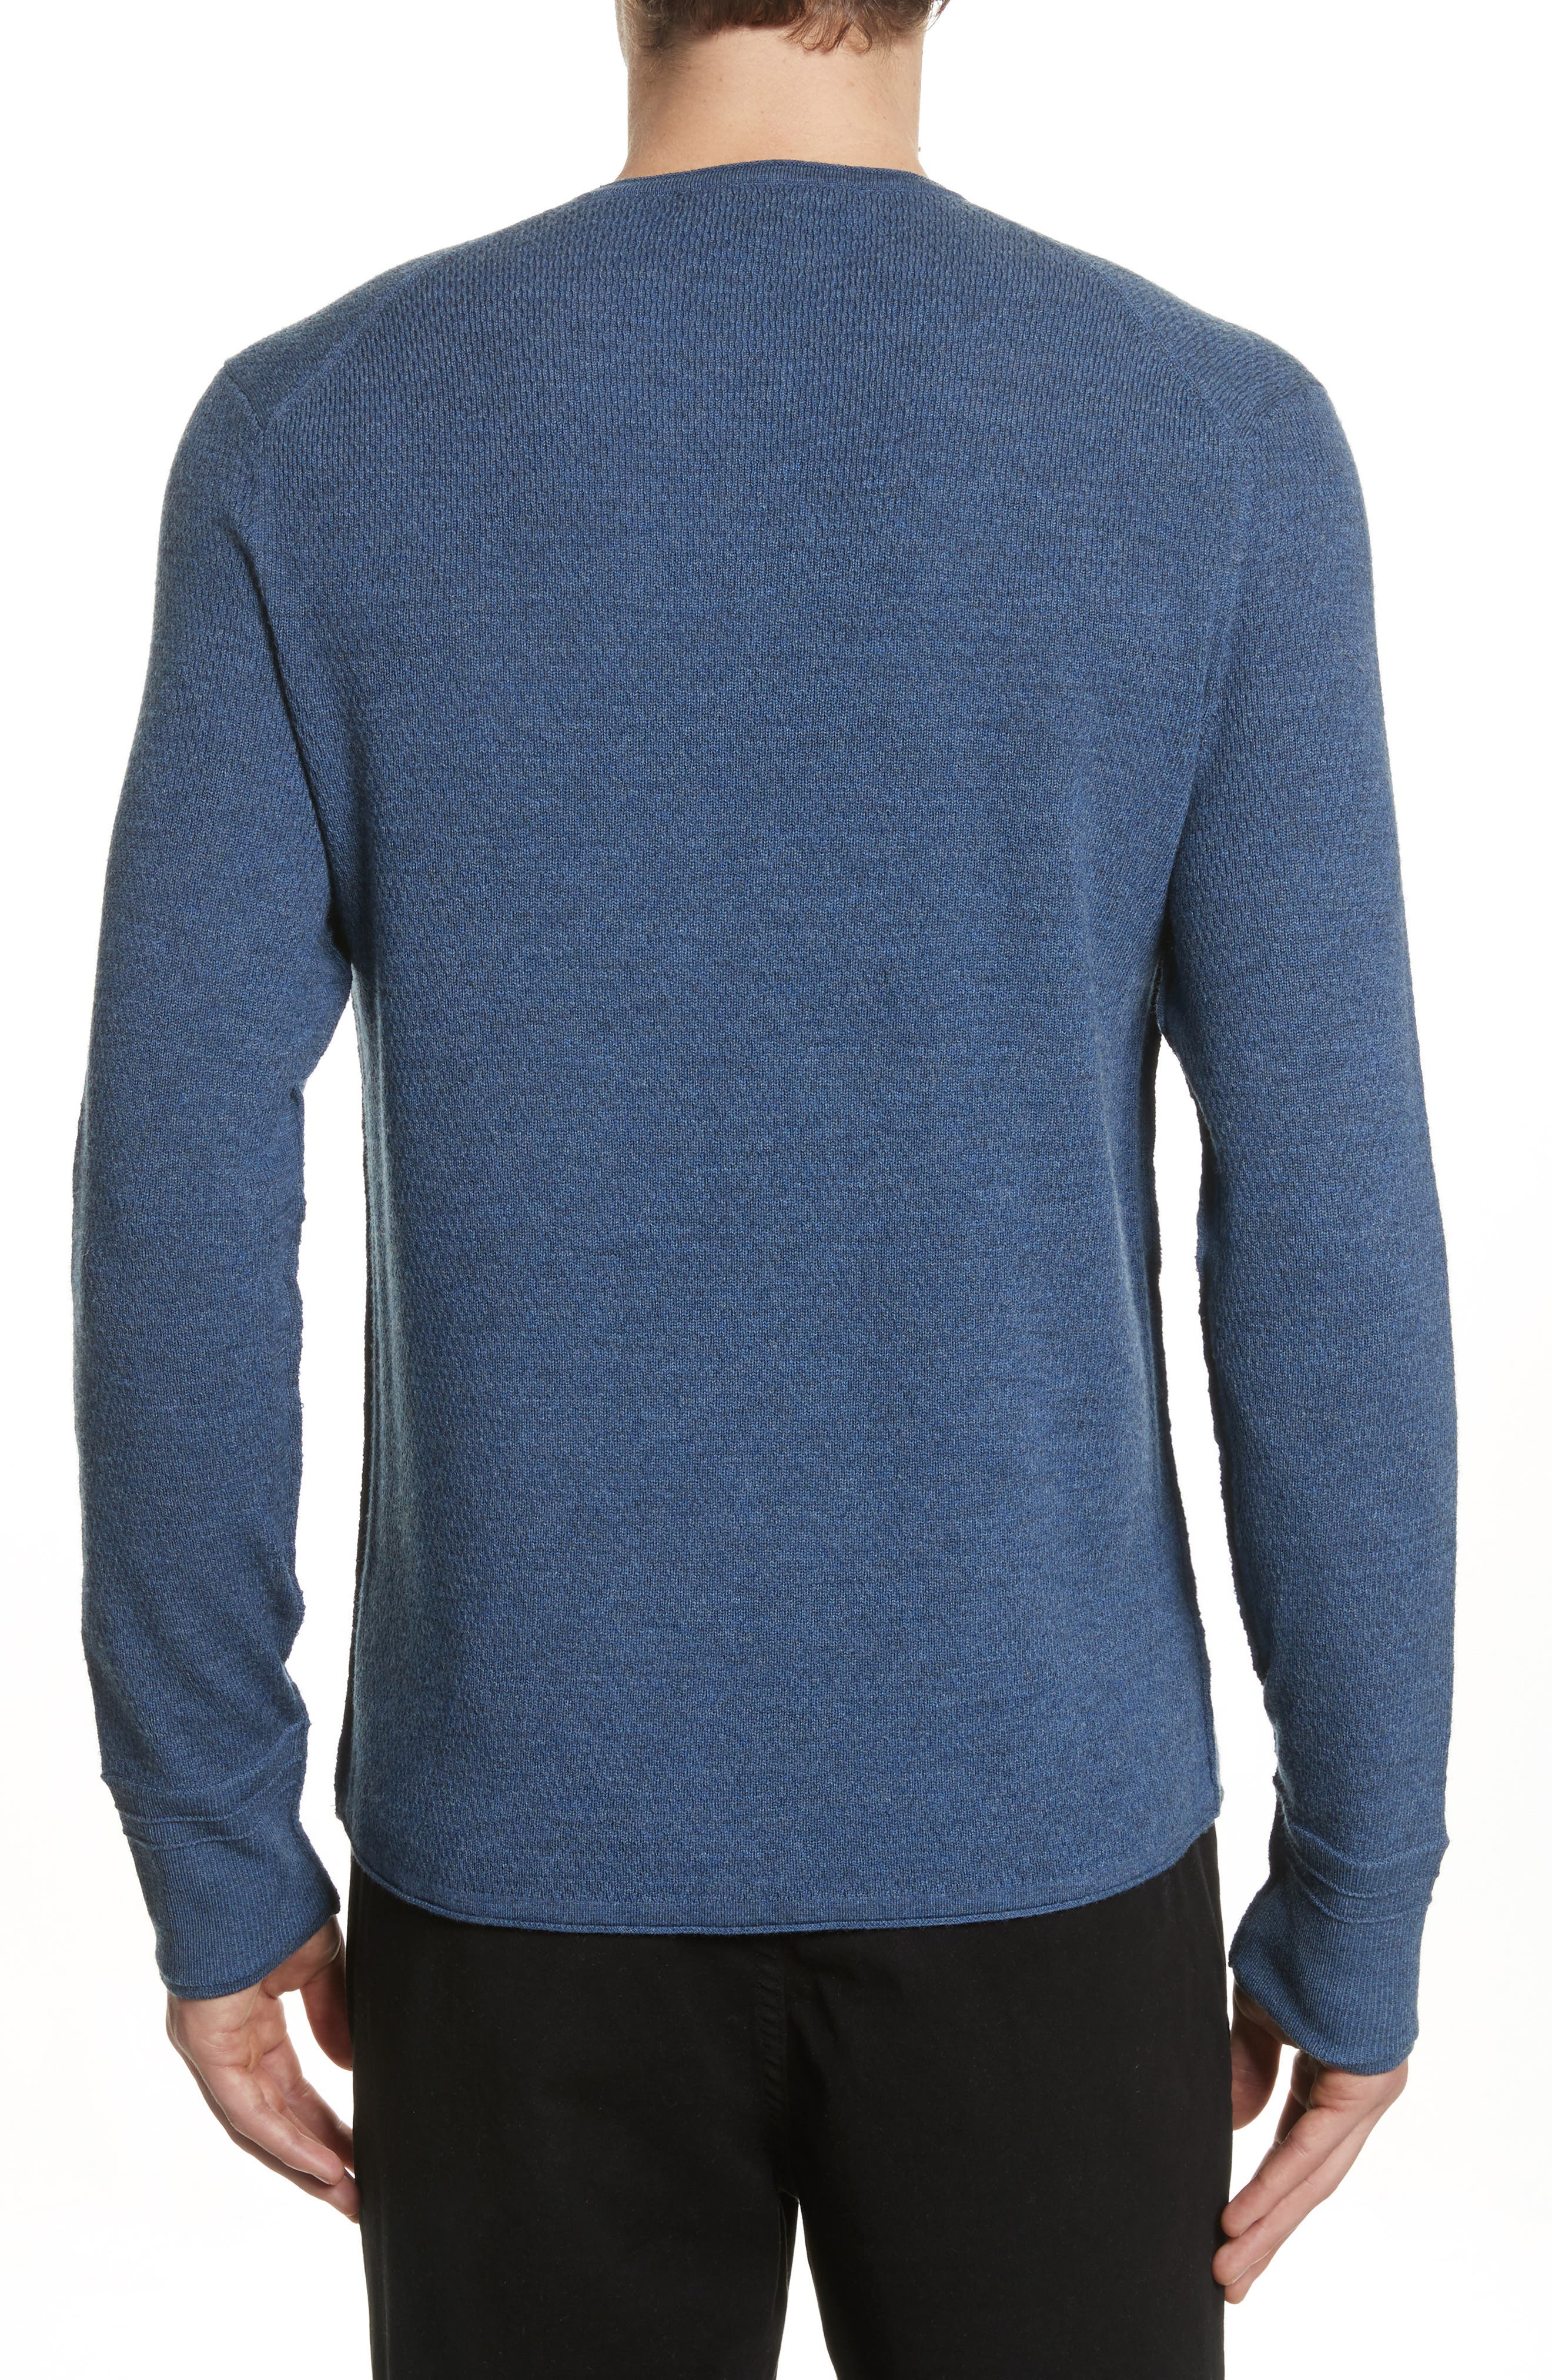 Gregory Merino Wool Blend Crewneck Sweater,                             Alternate thumbnail 2, color,                             Heather Blue